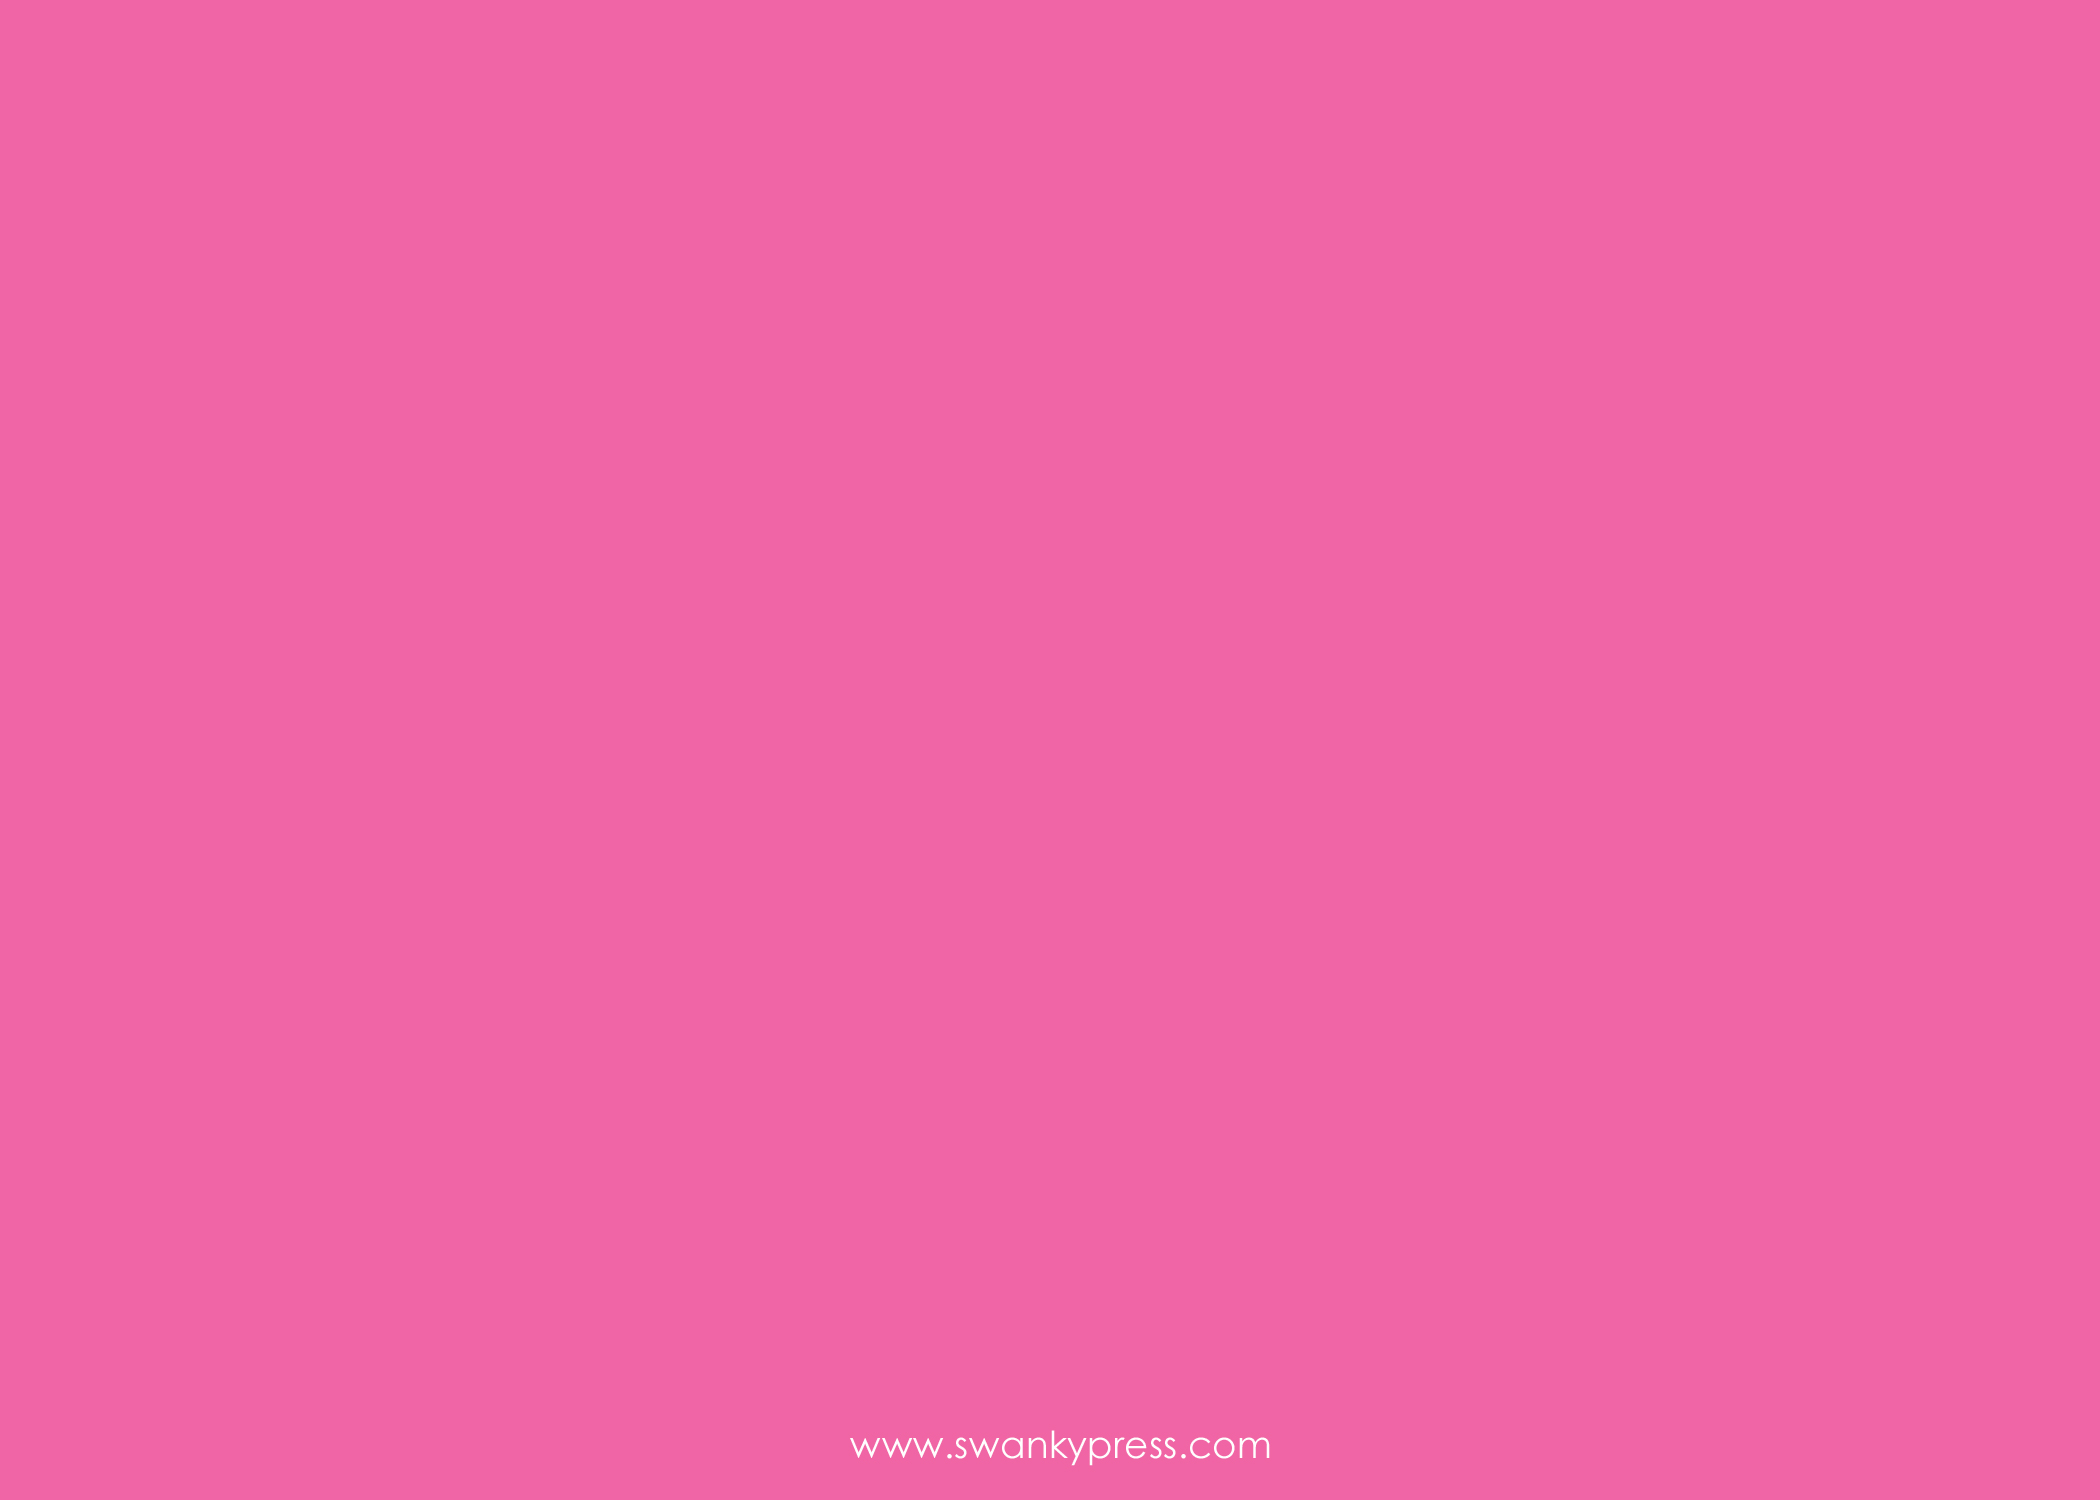 Solid Pink Wallpaper Solid pink color 2100x1500